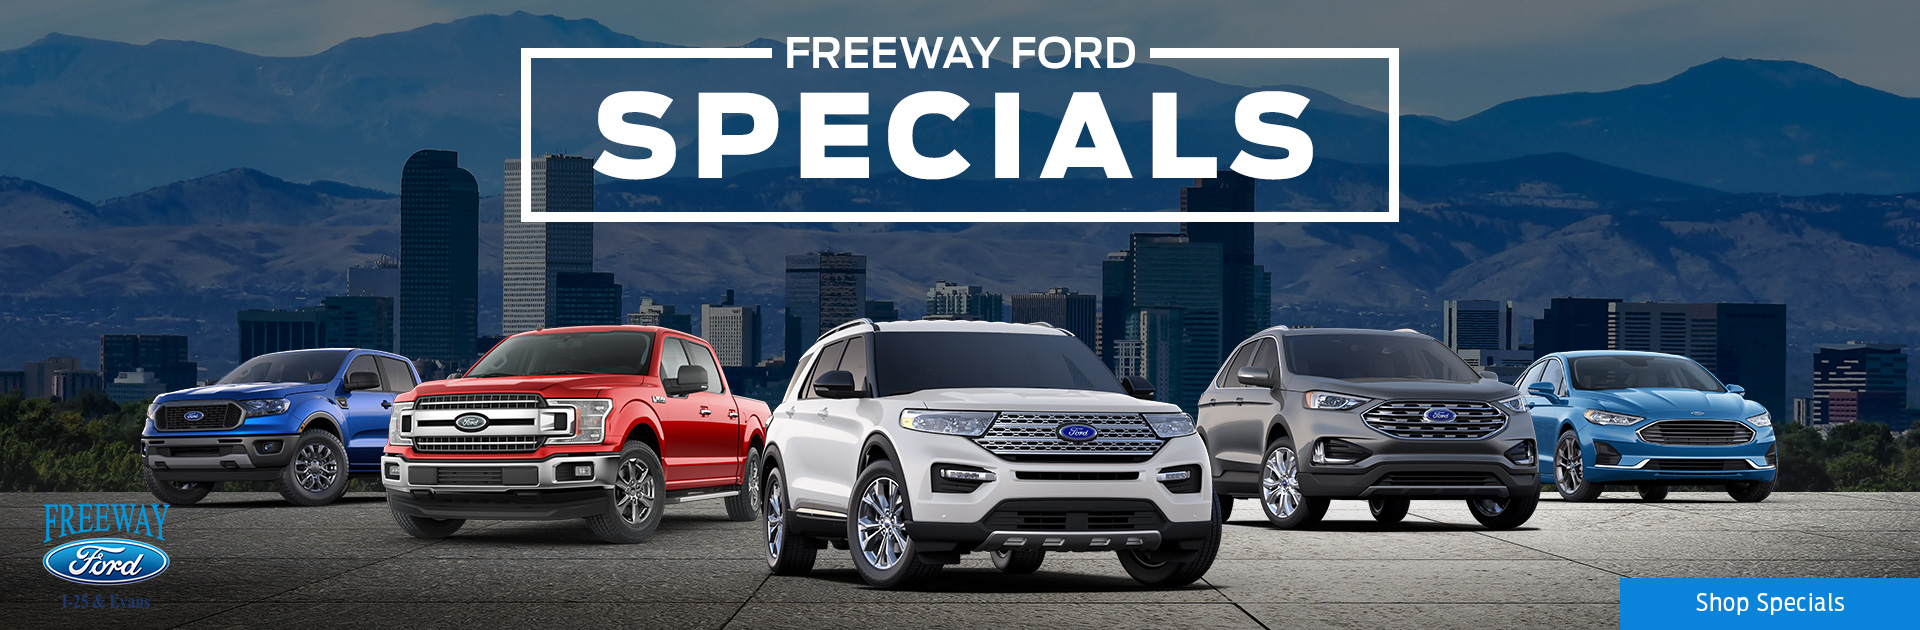 Freeway Ford Specials